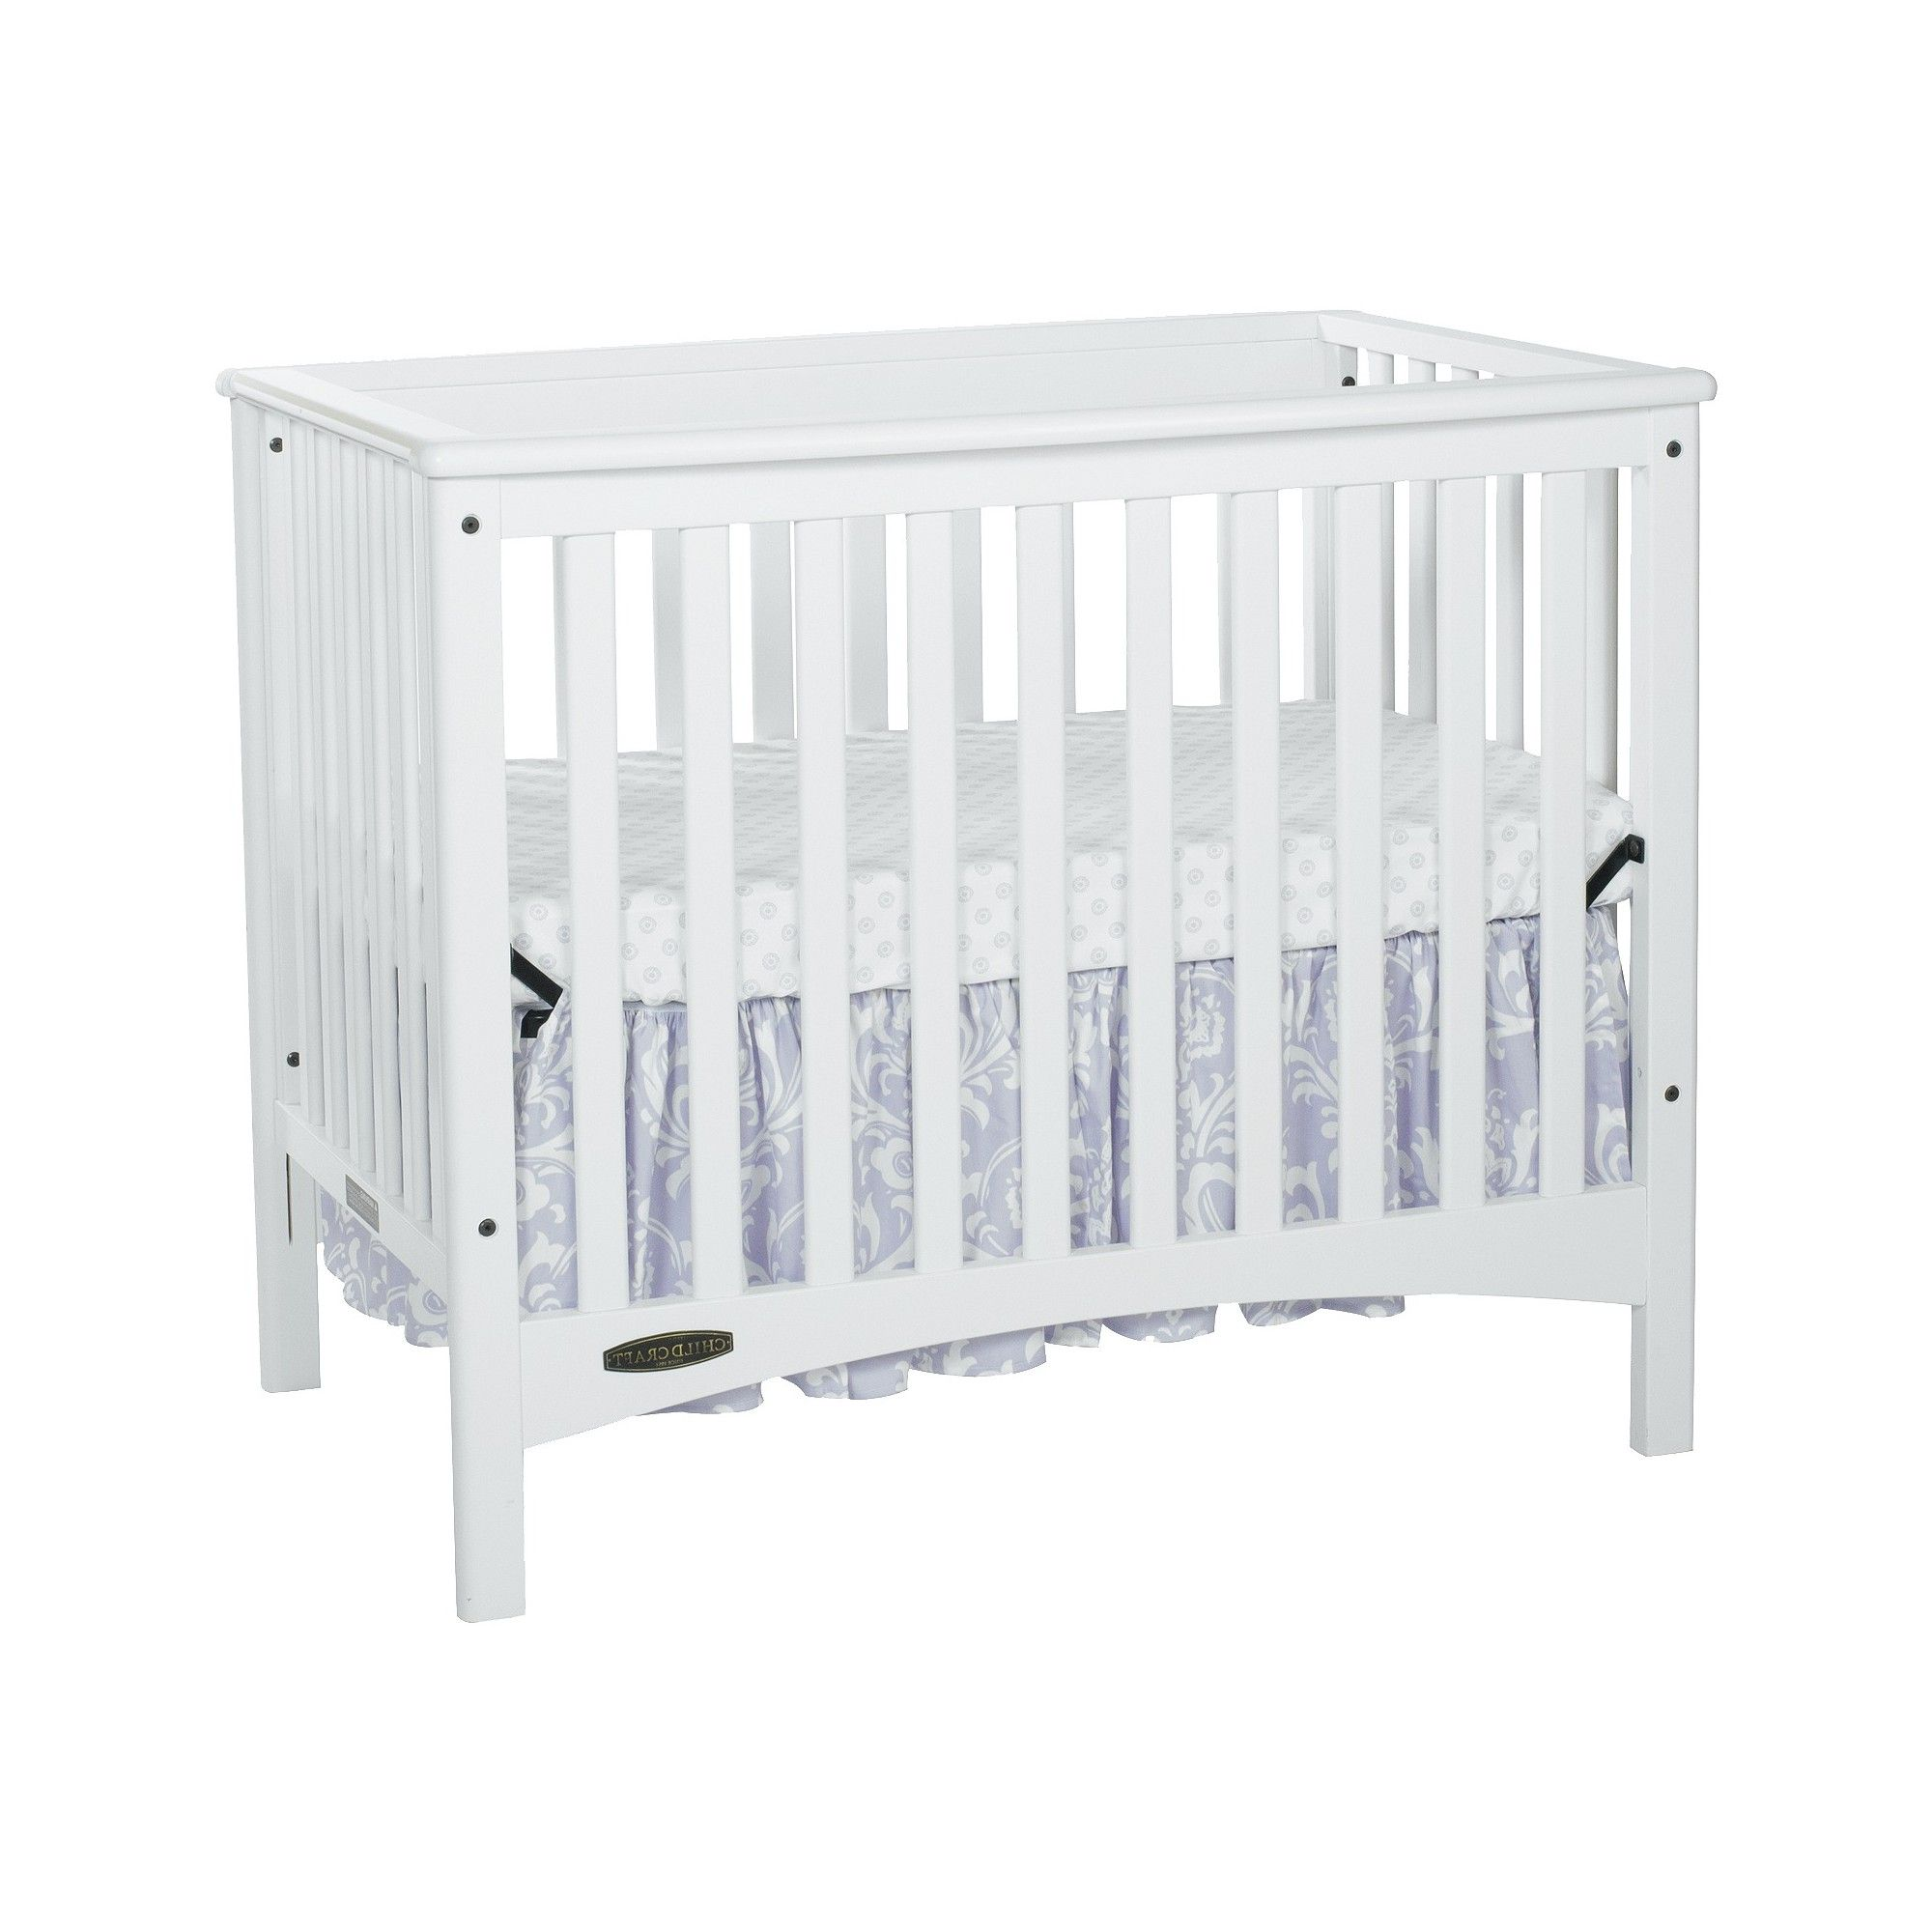 in london product today overstock mini shipping home euro white craft free cribs convertible child mattress crib garden with